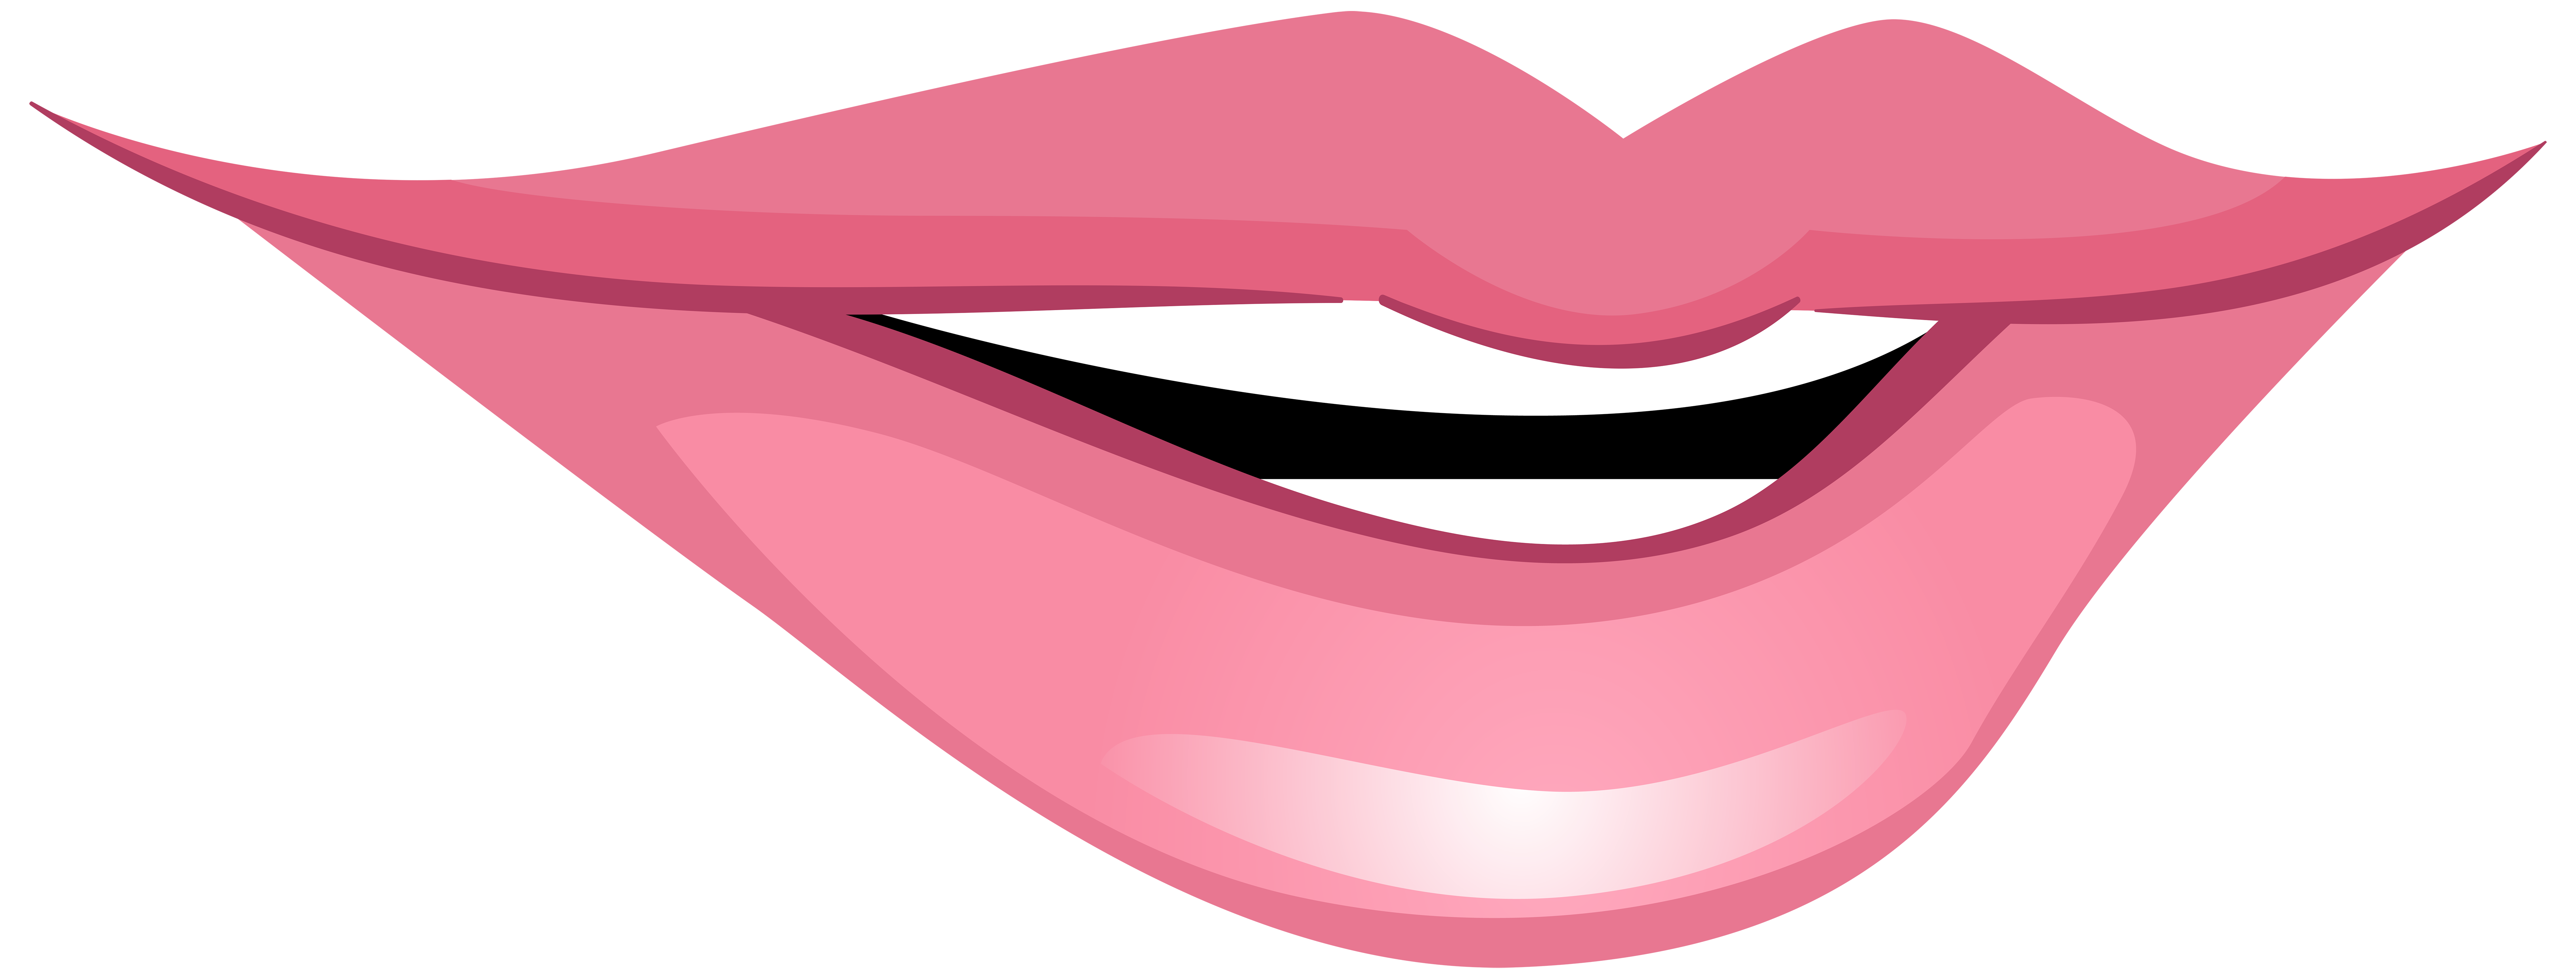 8000x3040 Pink Smiling Mouth Png Clip Art